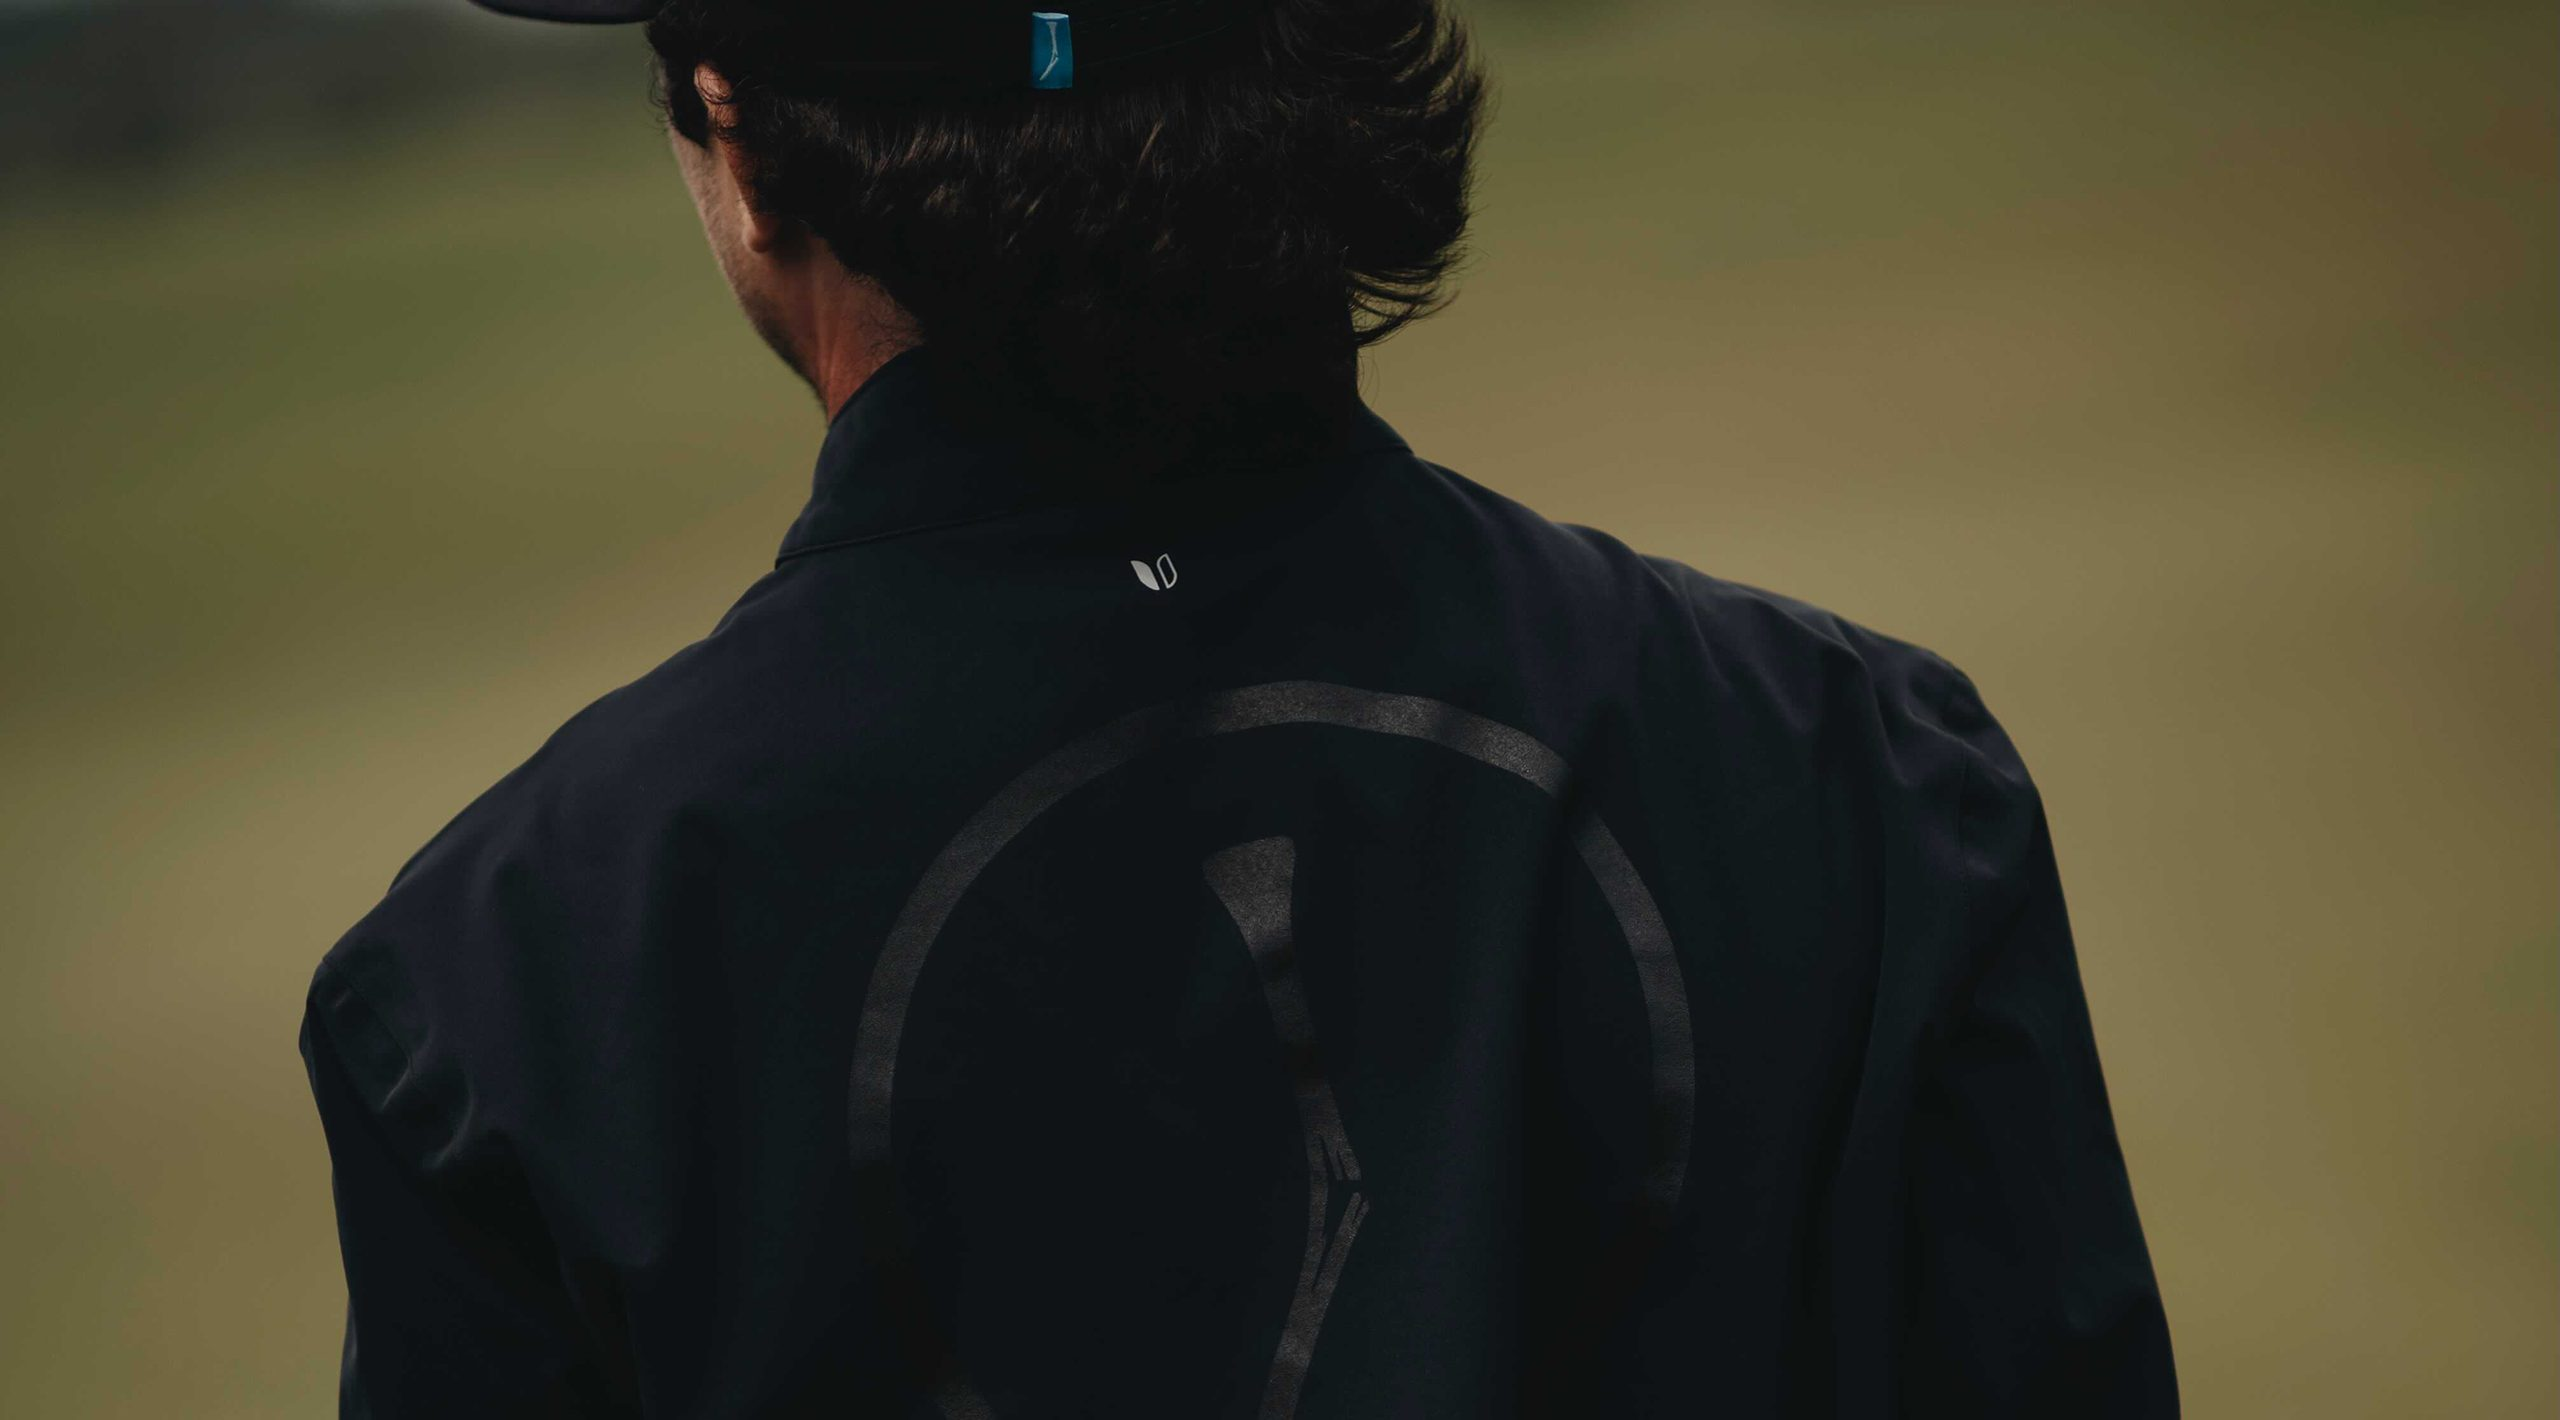 The Polartec Jacket